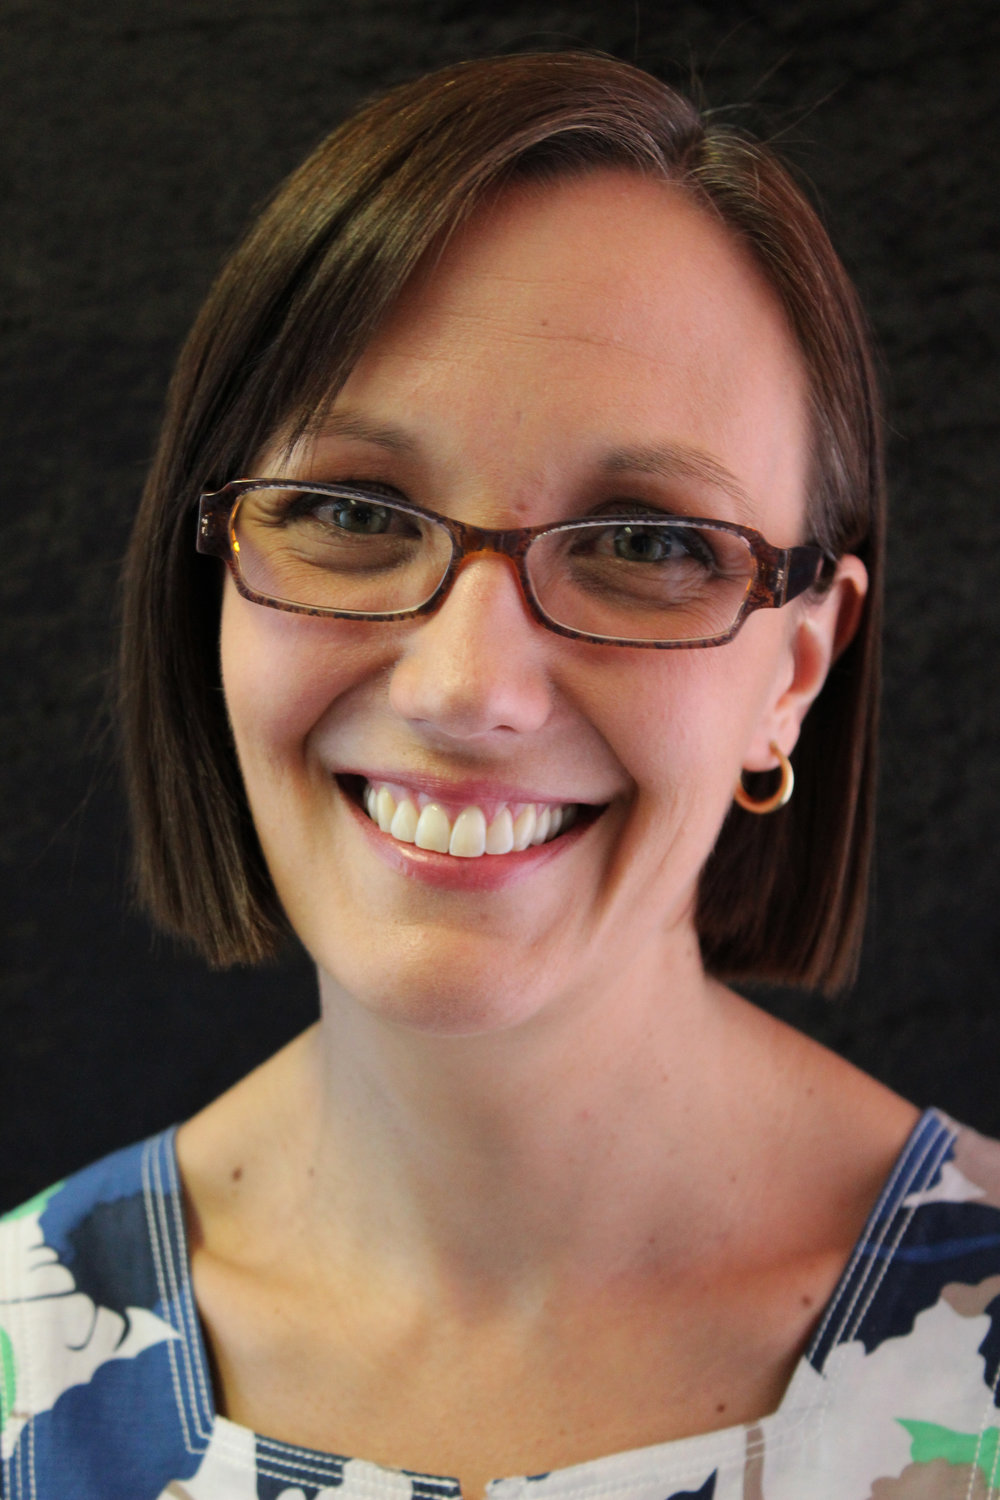 TARYN GRAY - CLINICAL SYSTEMS MANAGER